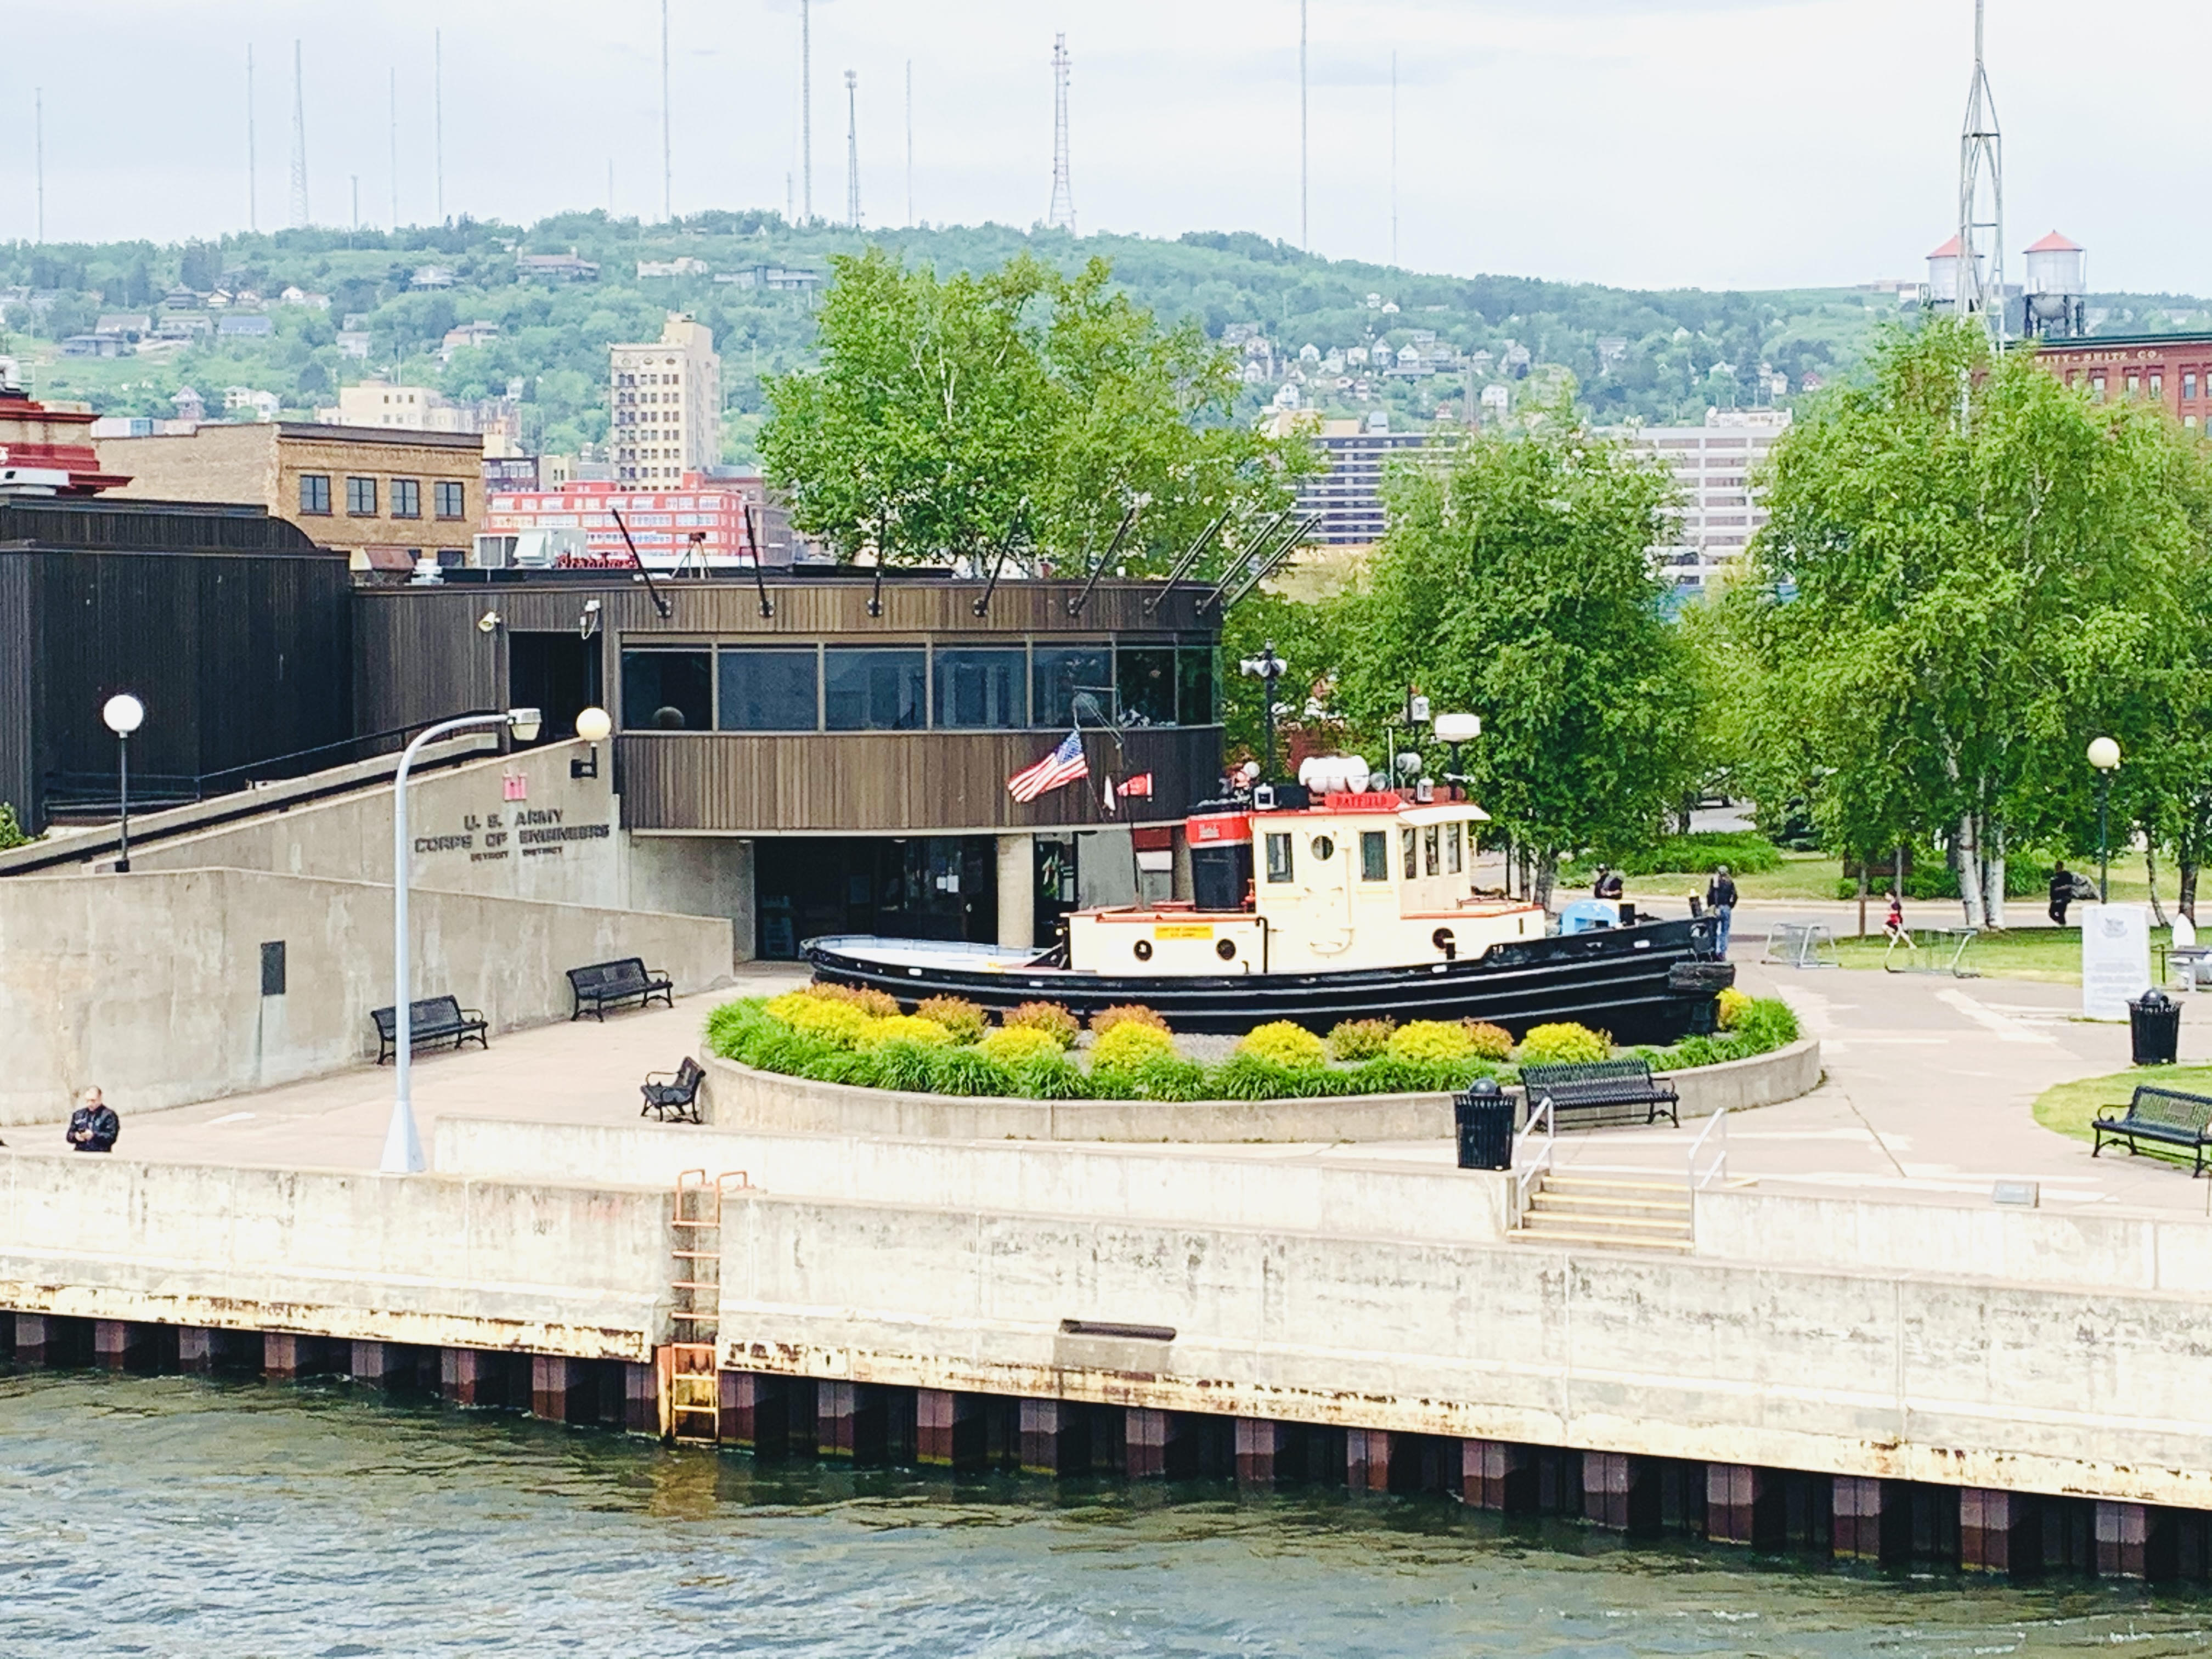 Discover the best Duluth attractions from top U.S. family travel blog, Travel With A Plan:  Duluth Maritime Museum